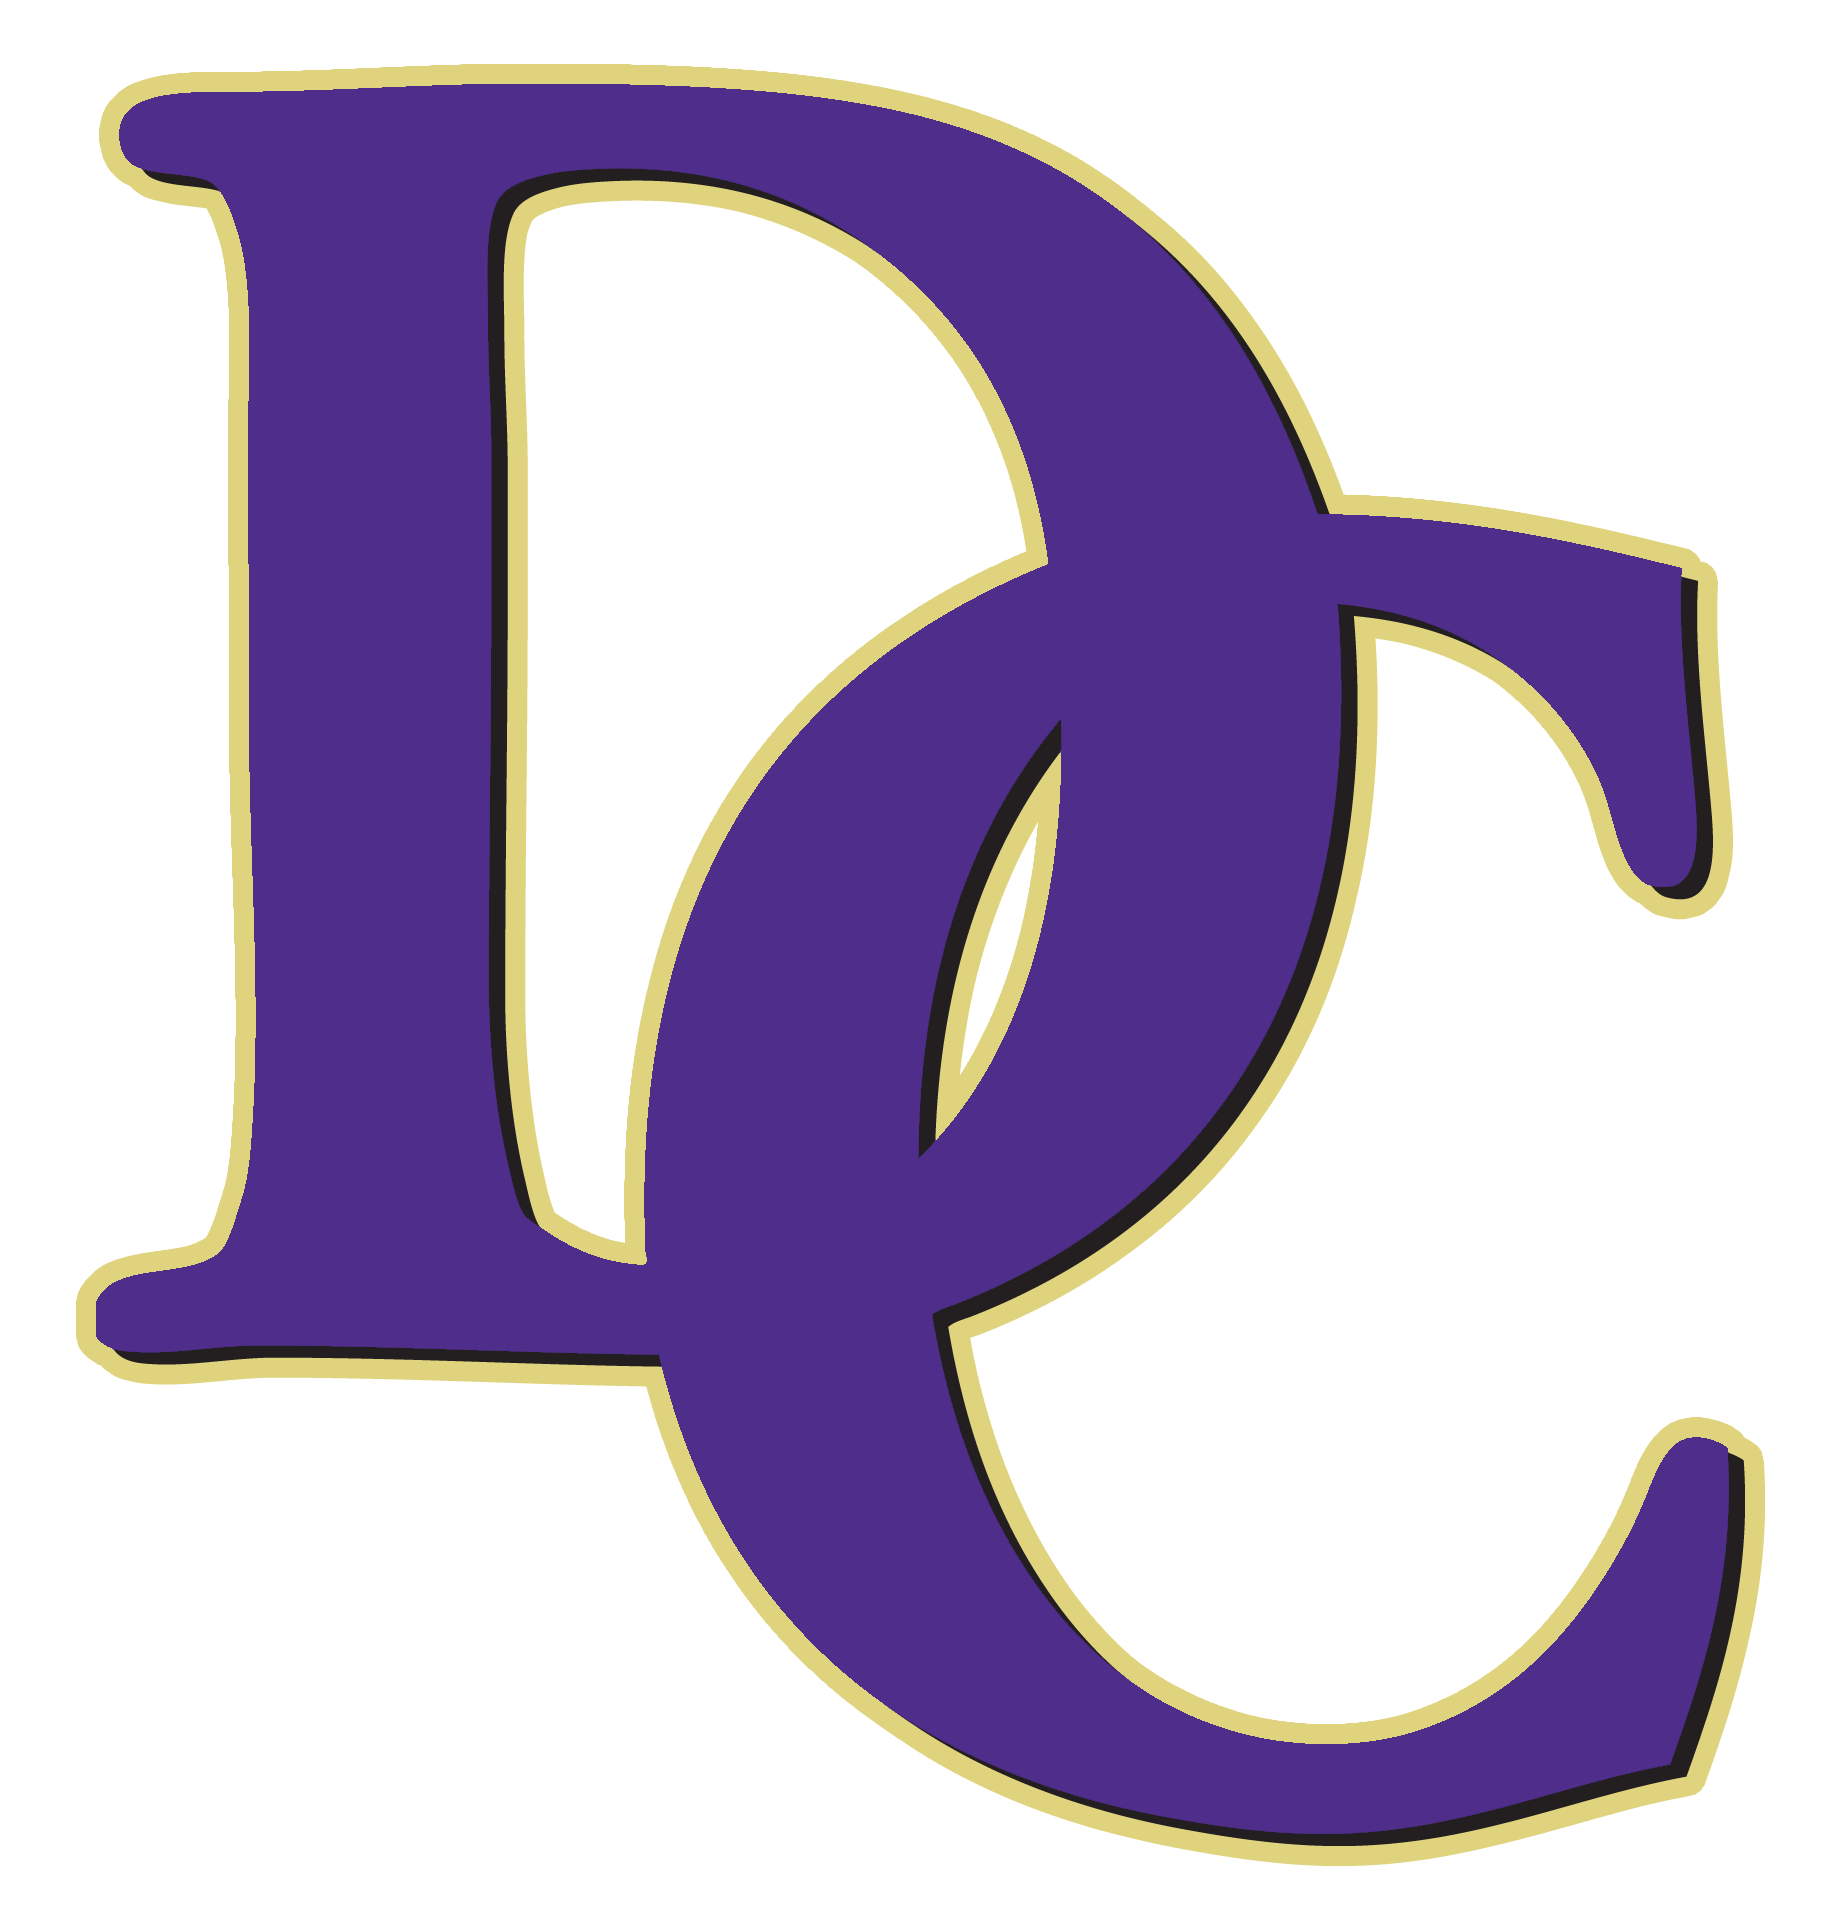 Media logo clipart clipart library Media Zone - Athletic Logos - Official Site of Defiance College ... clipart library